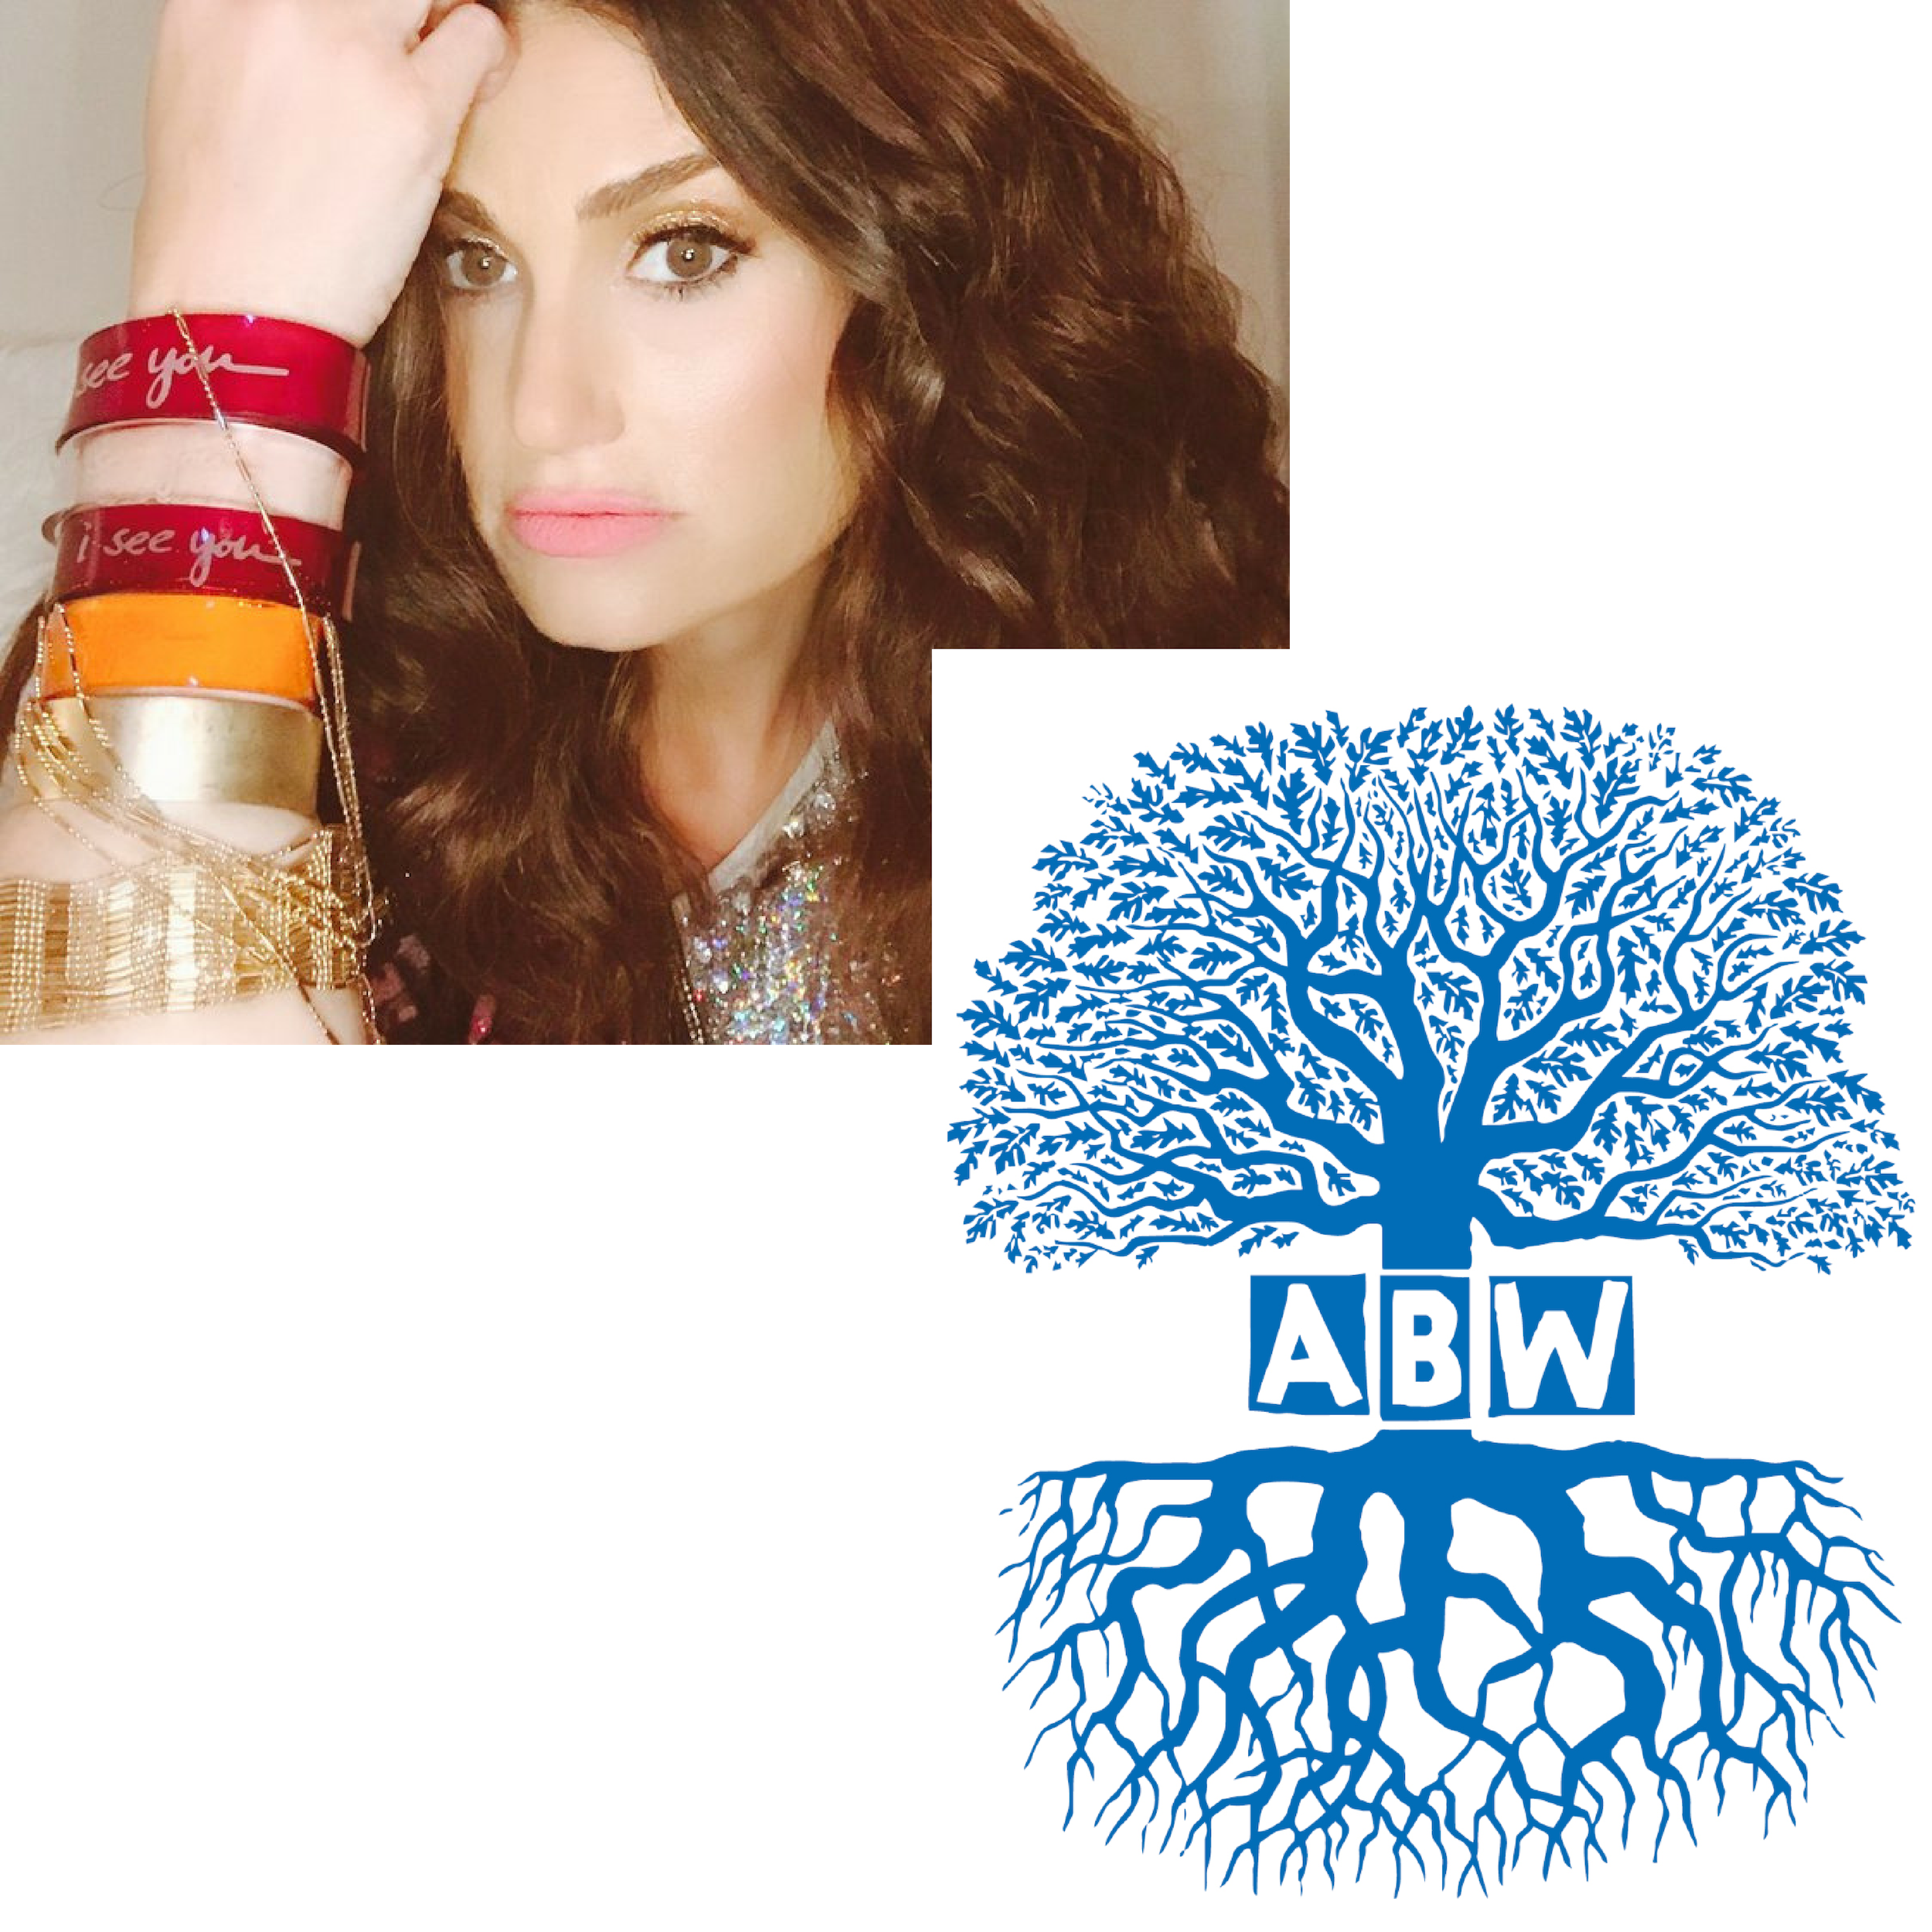 A BroaderWay Foundation - We are proud to be working with IDINA MENZEL (Tony Award winner & singer of